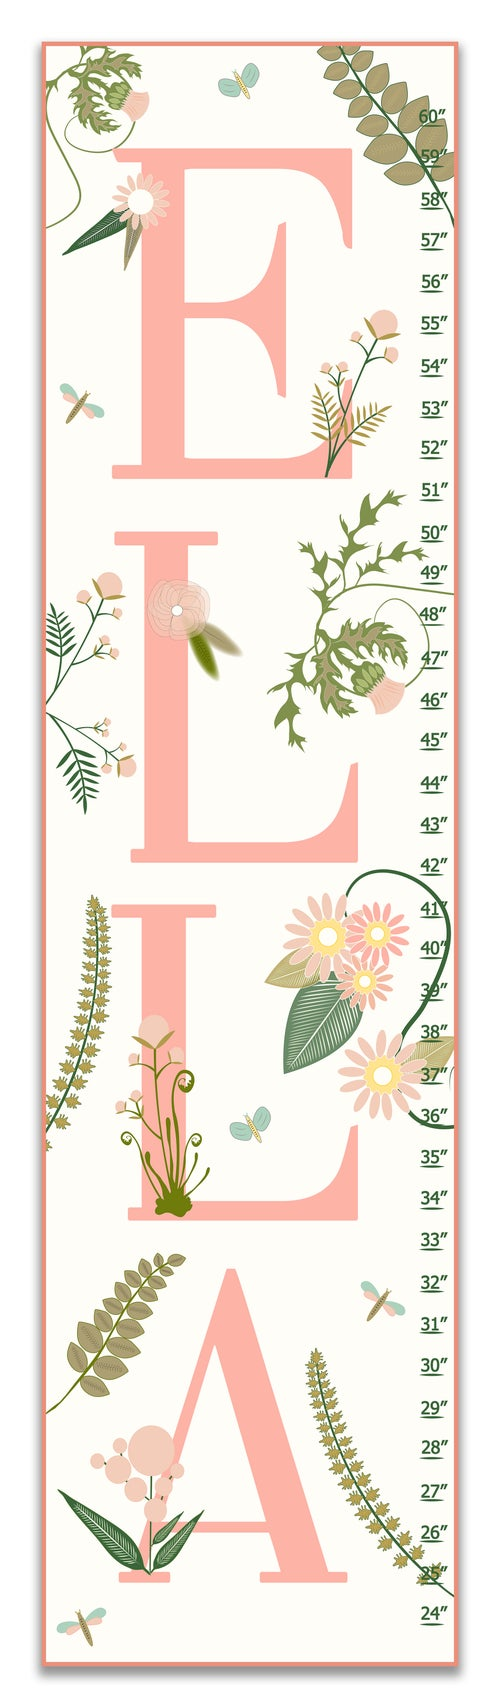 Image of Blush Pink Girl's Canvas Growth Chart - Personalized Floral Nursery Art